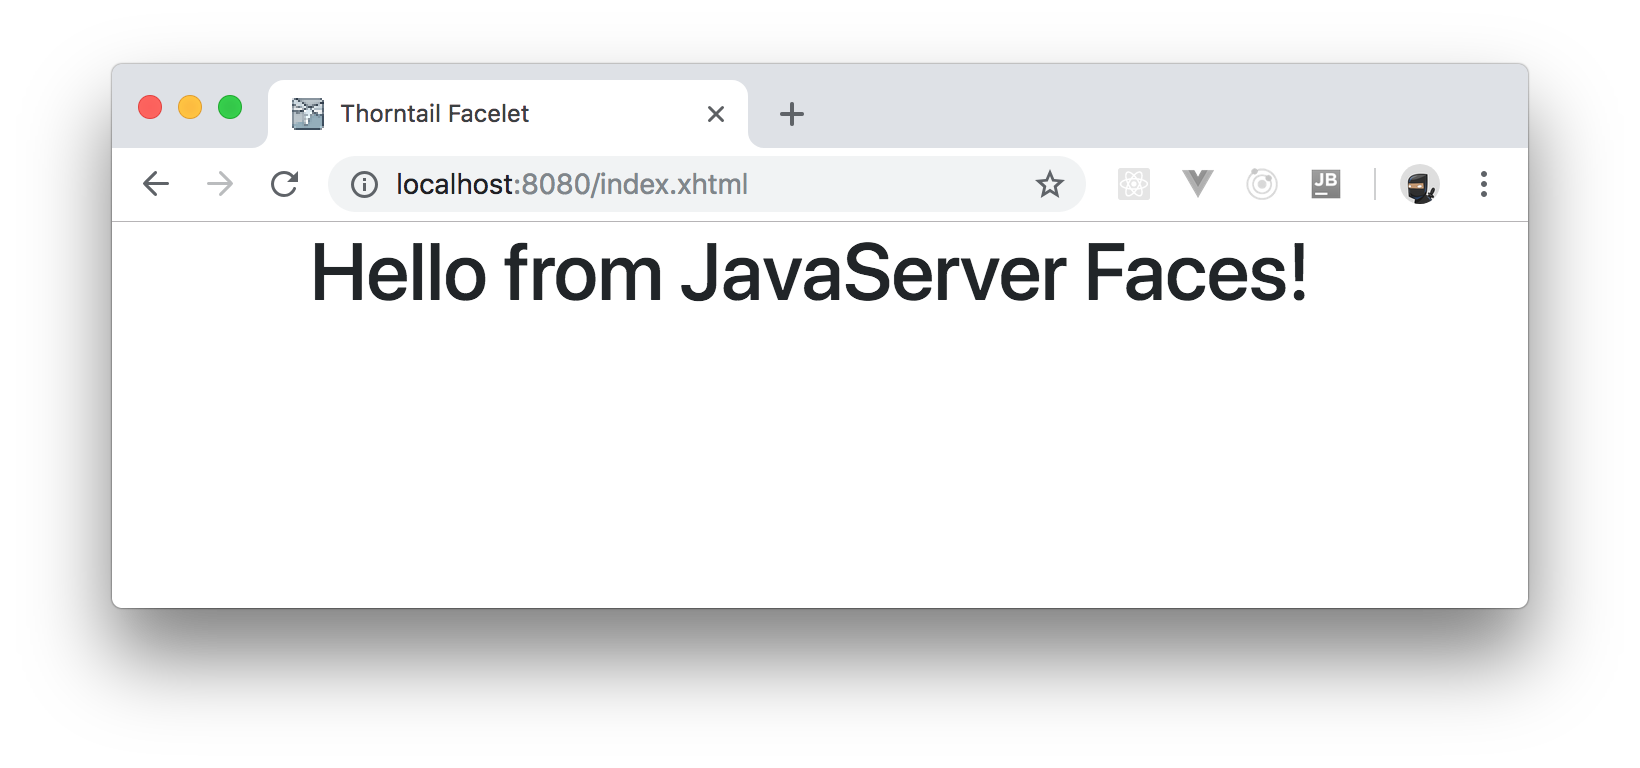 Configuring JavaServer Faces in your Java EE application.